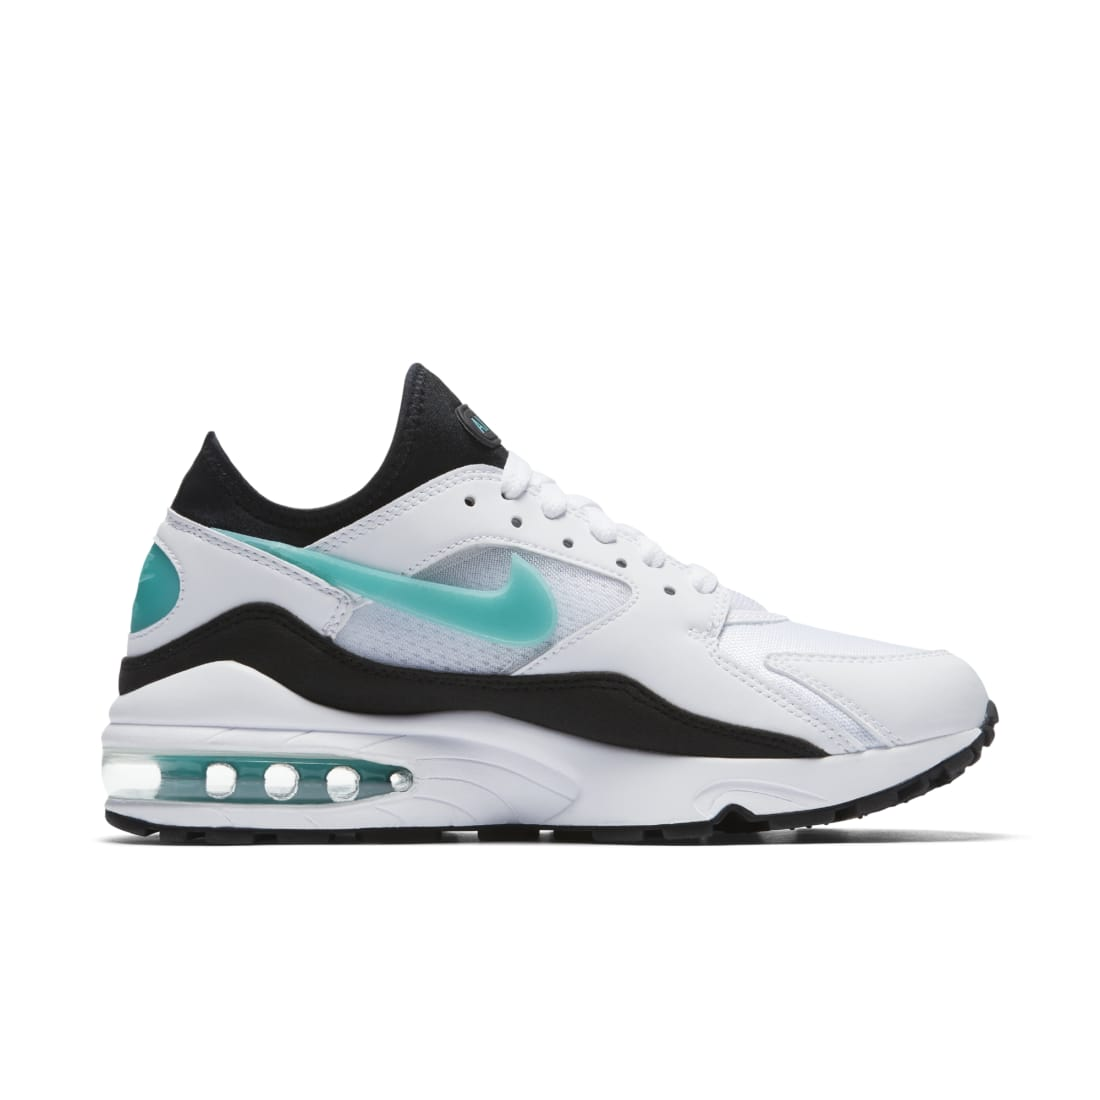 Nike Air Max 93 Menthol 2018 | Nike | Sole Collector